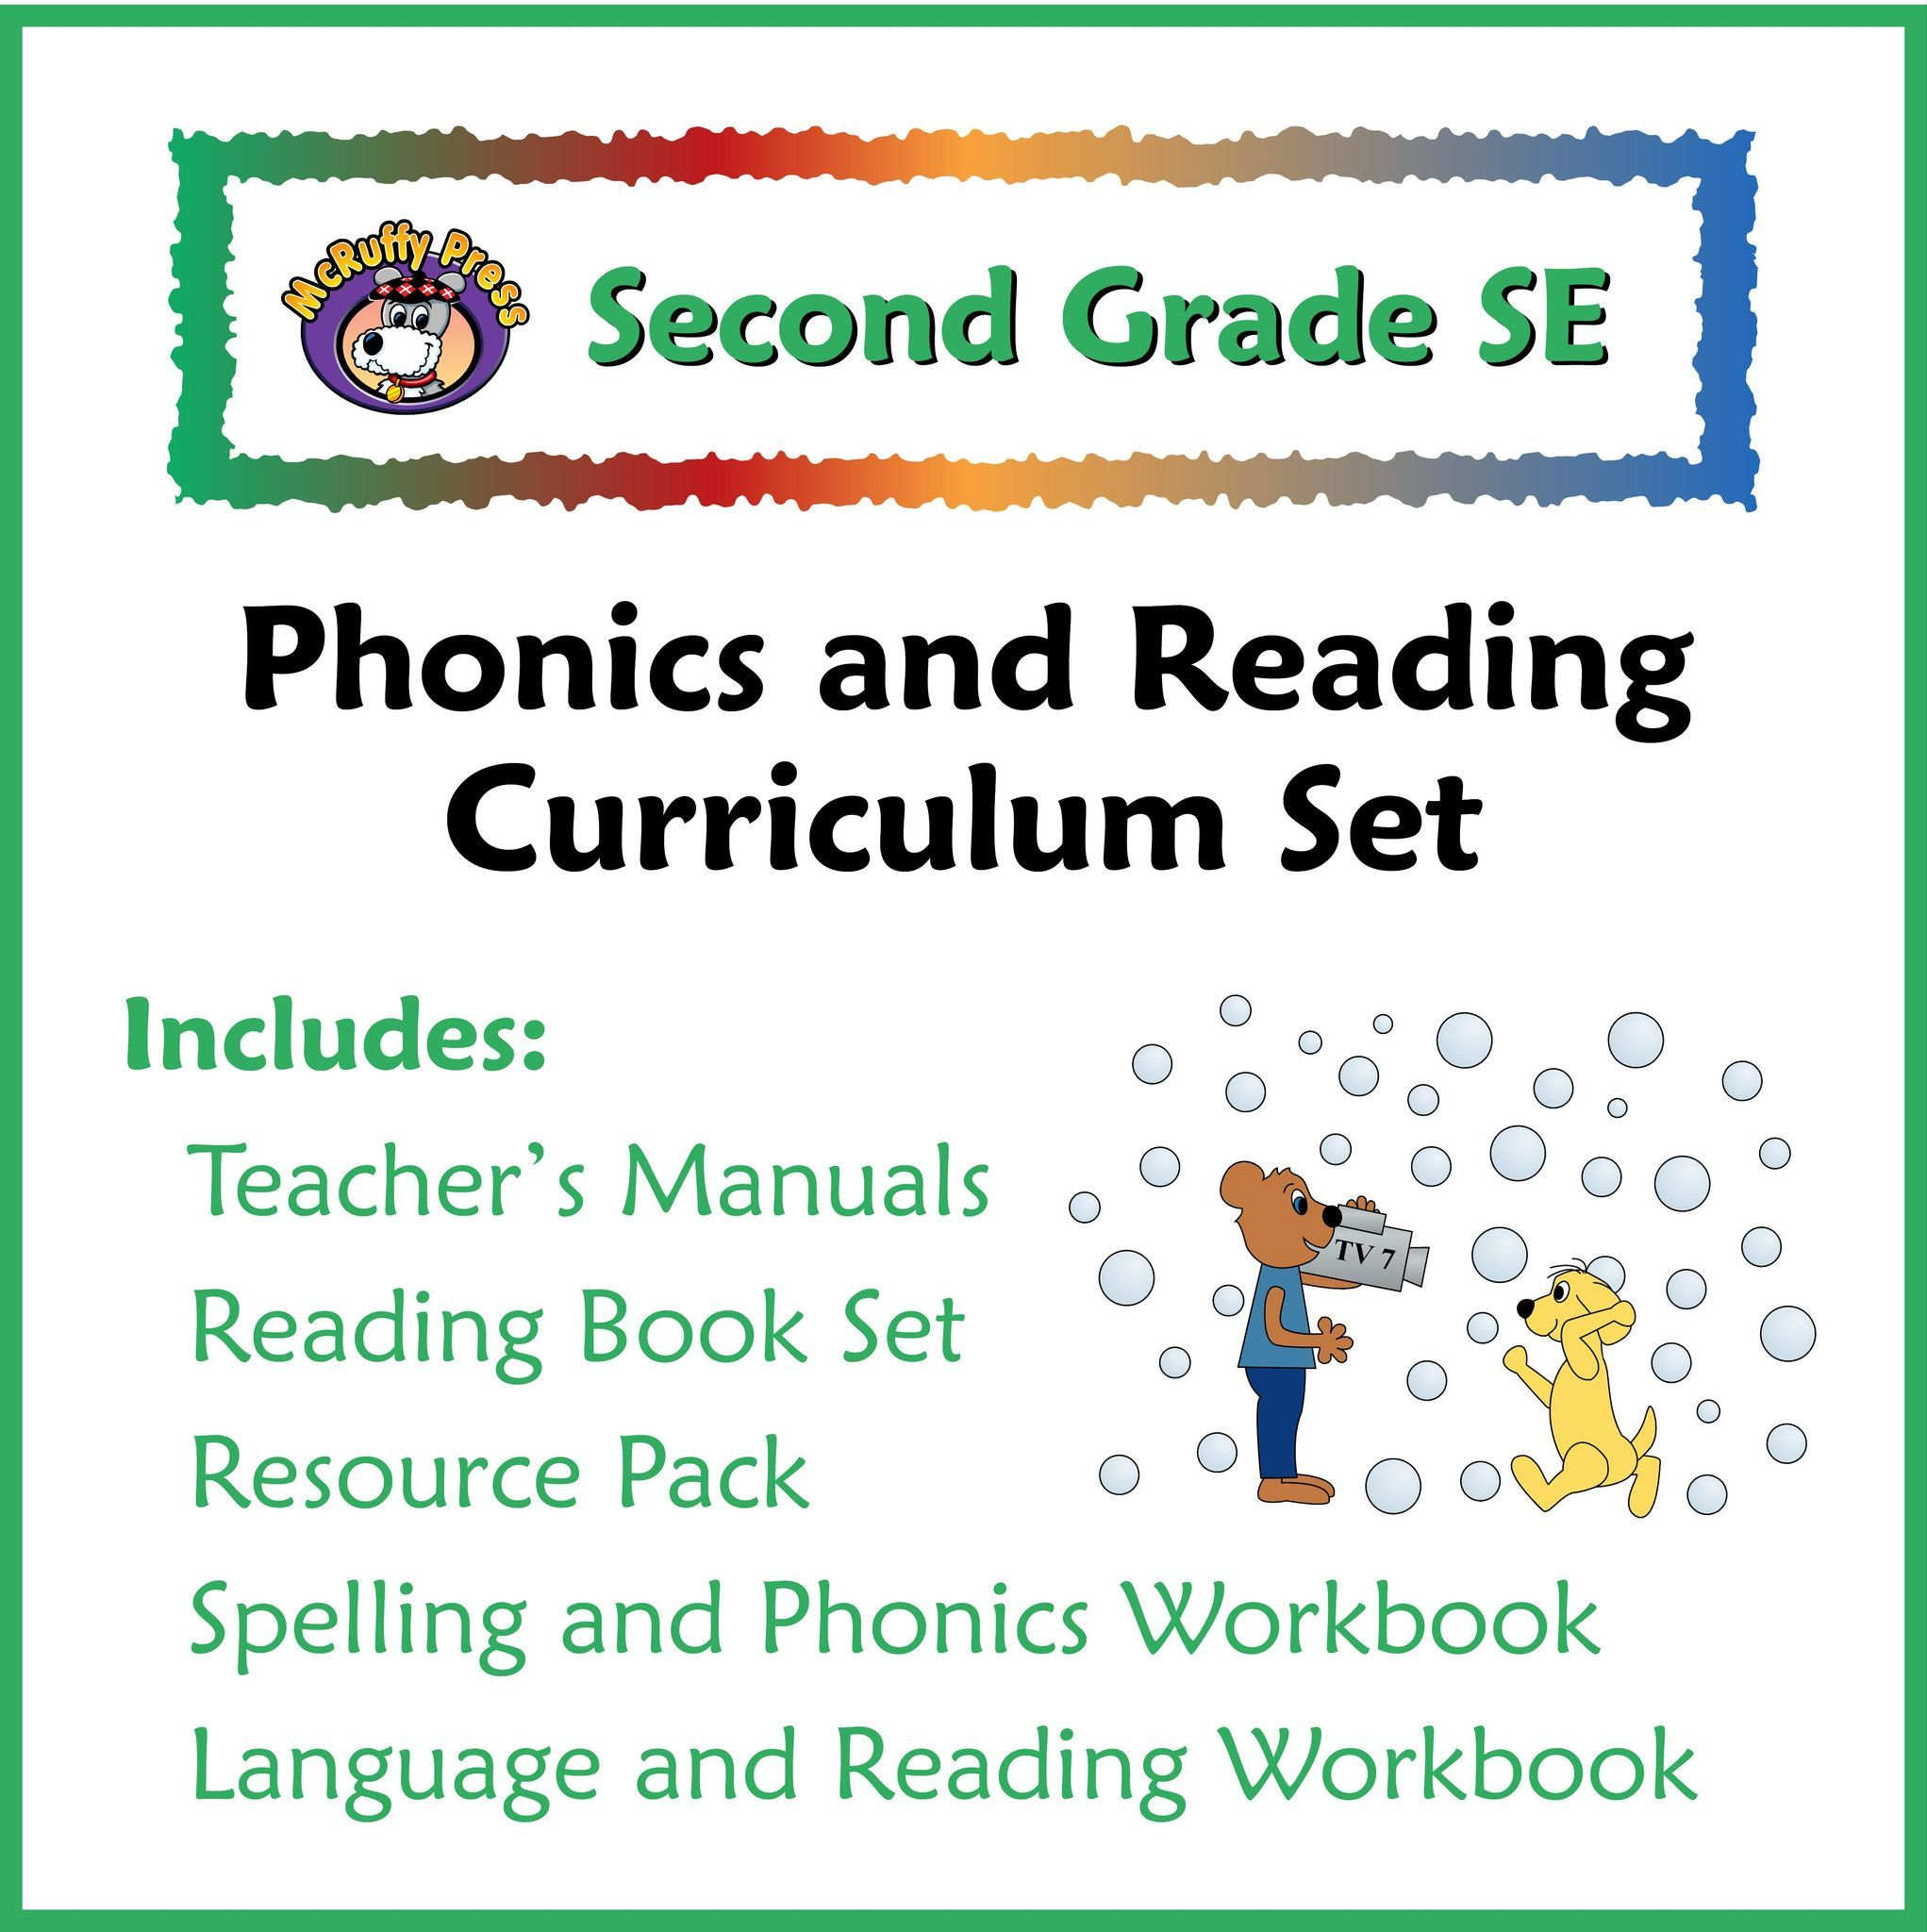 Second grade se phonics and reading curriculum products